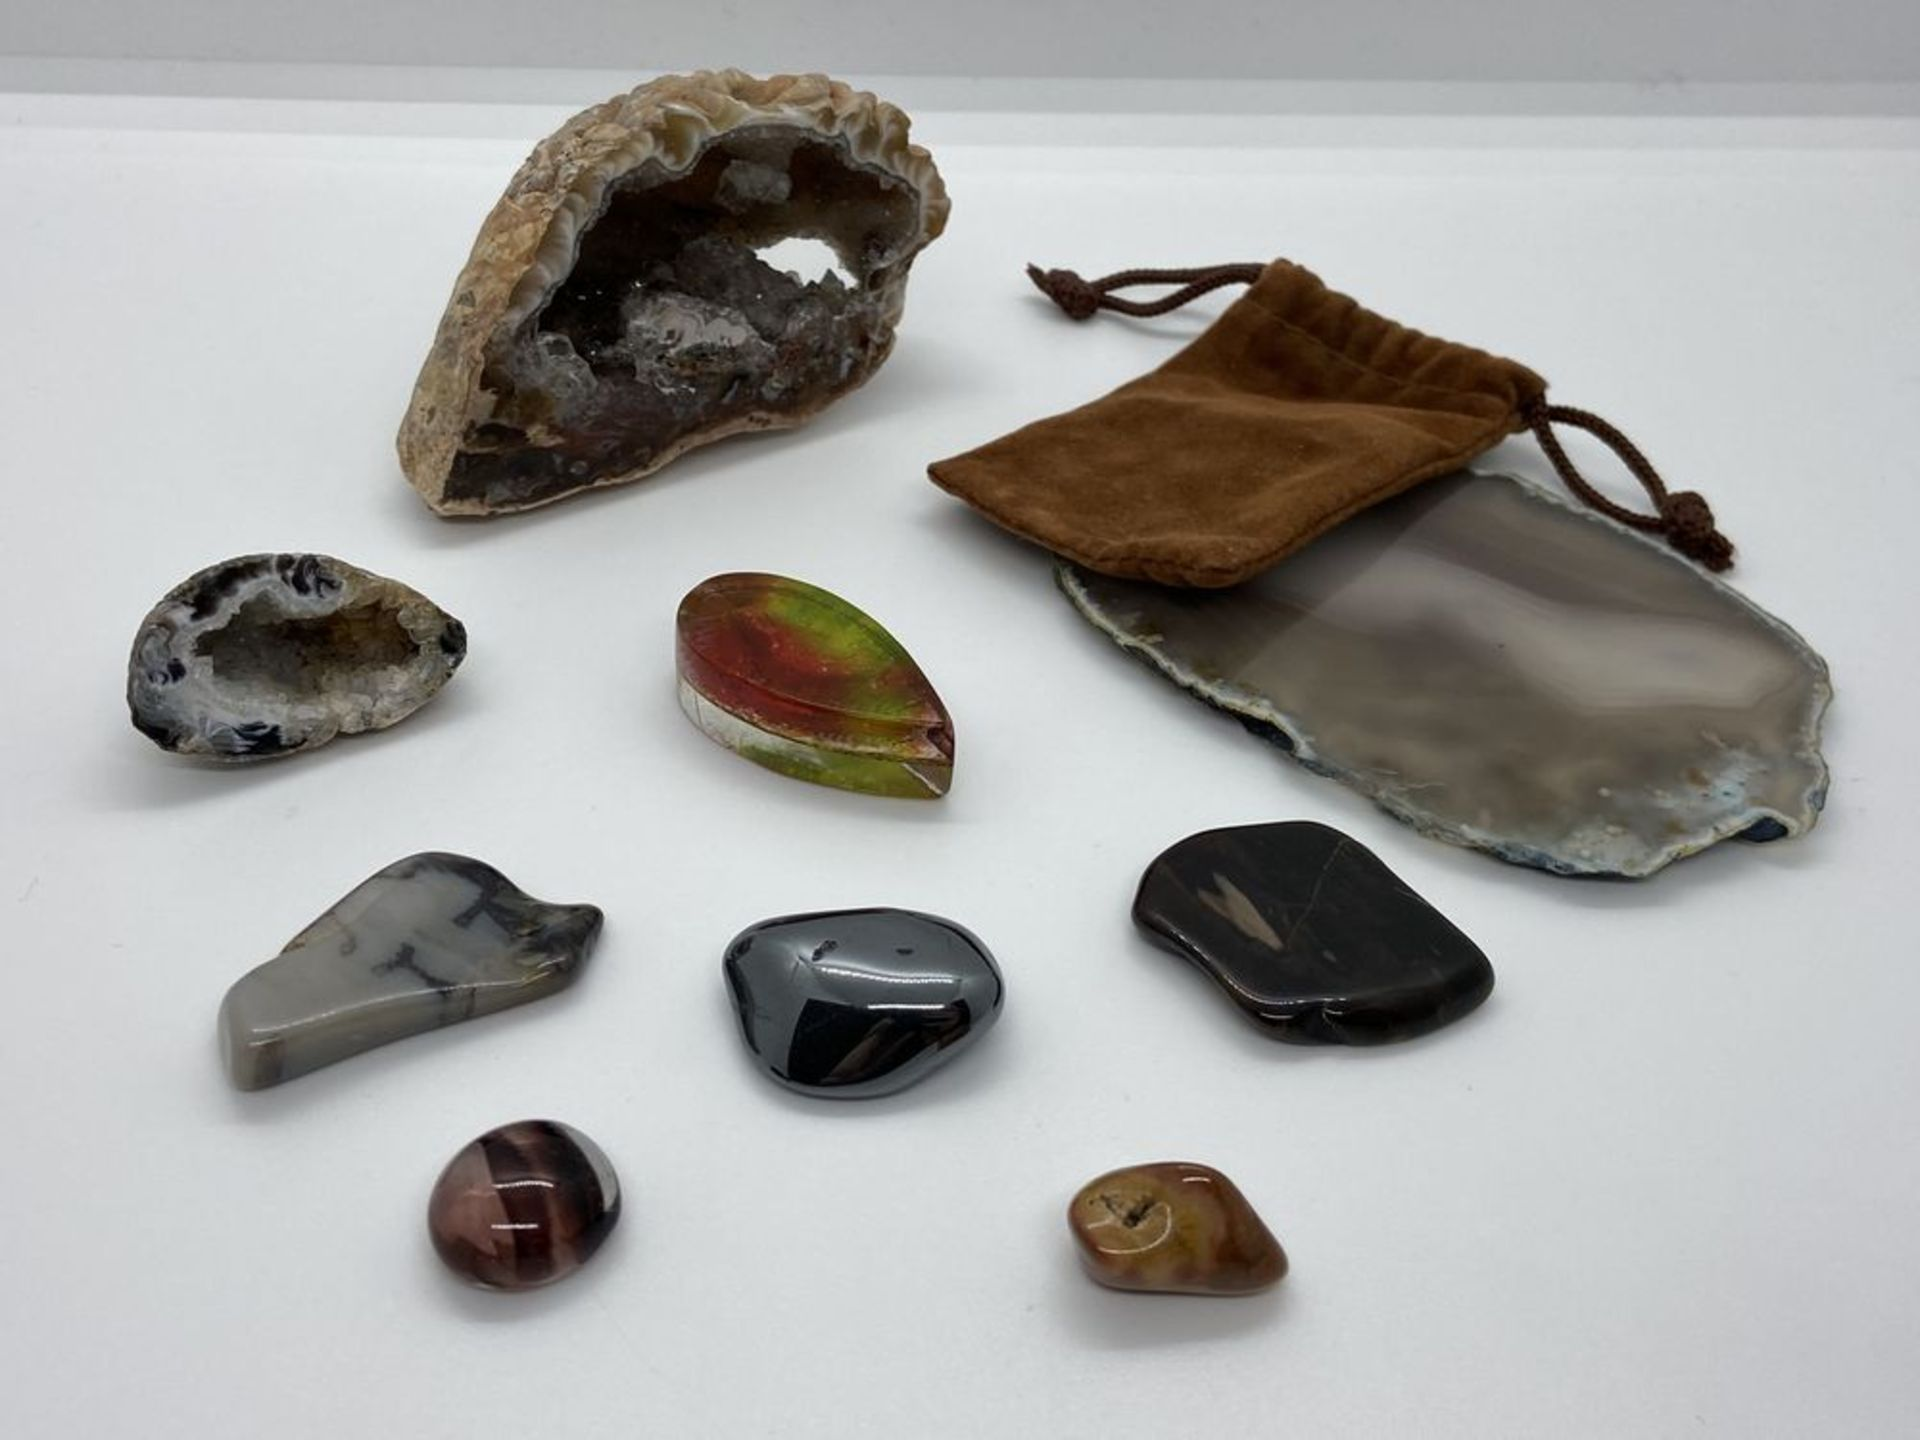 Collection of rocks, stones